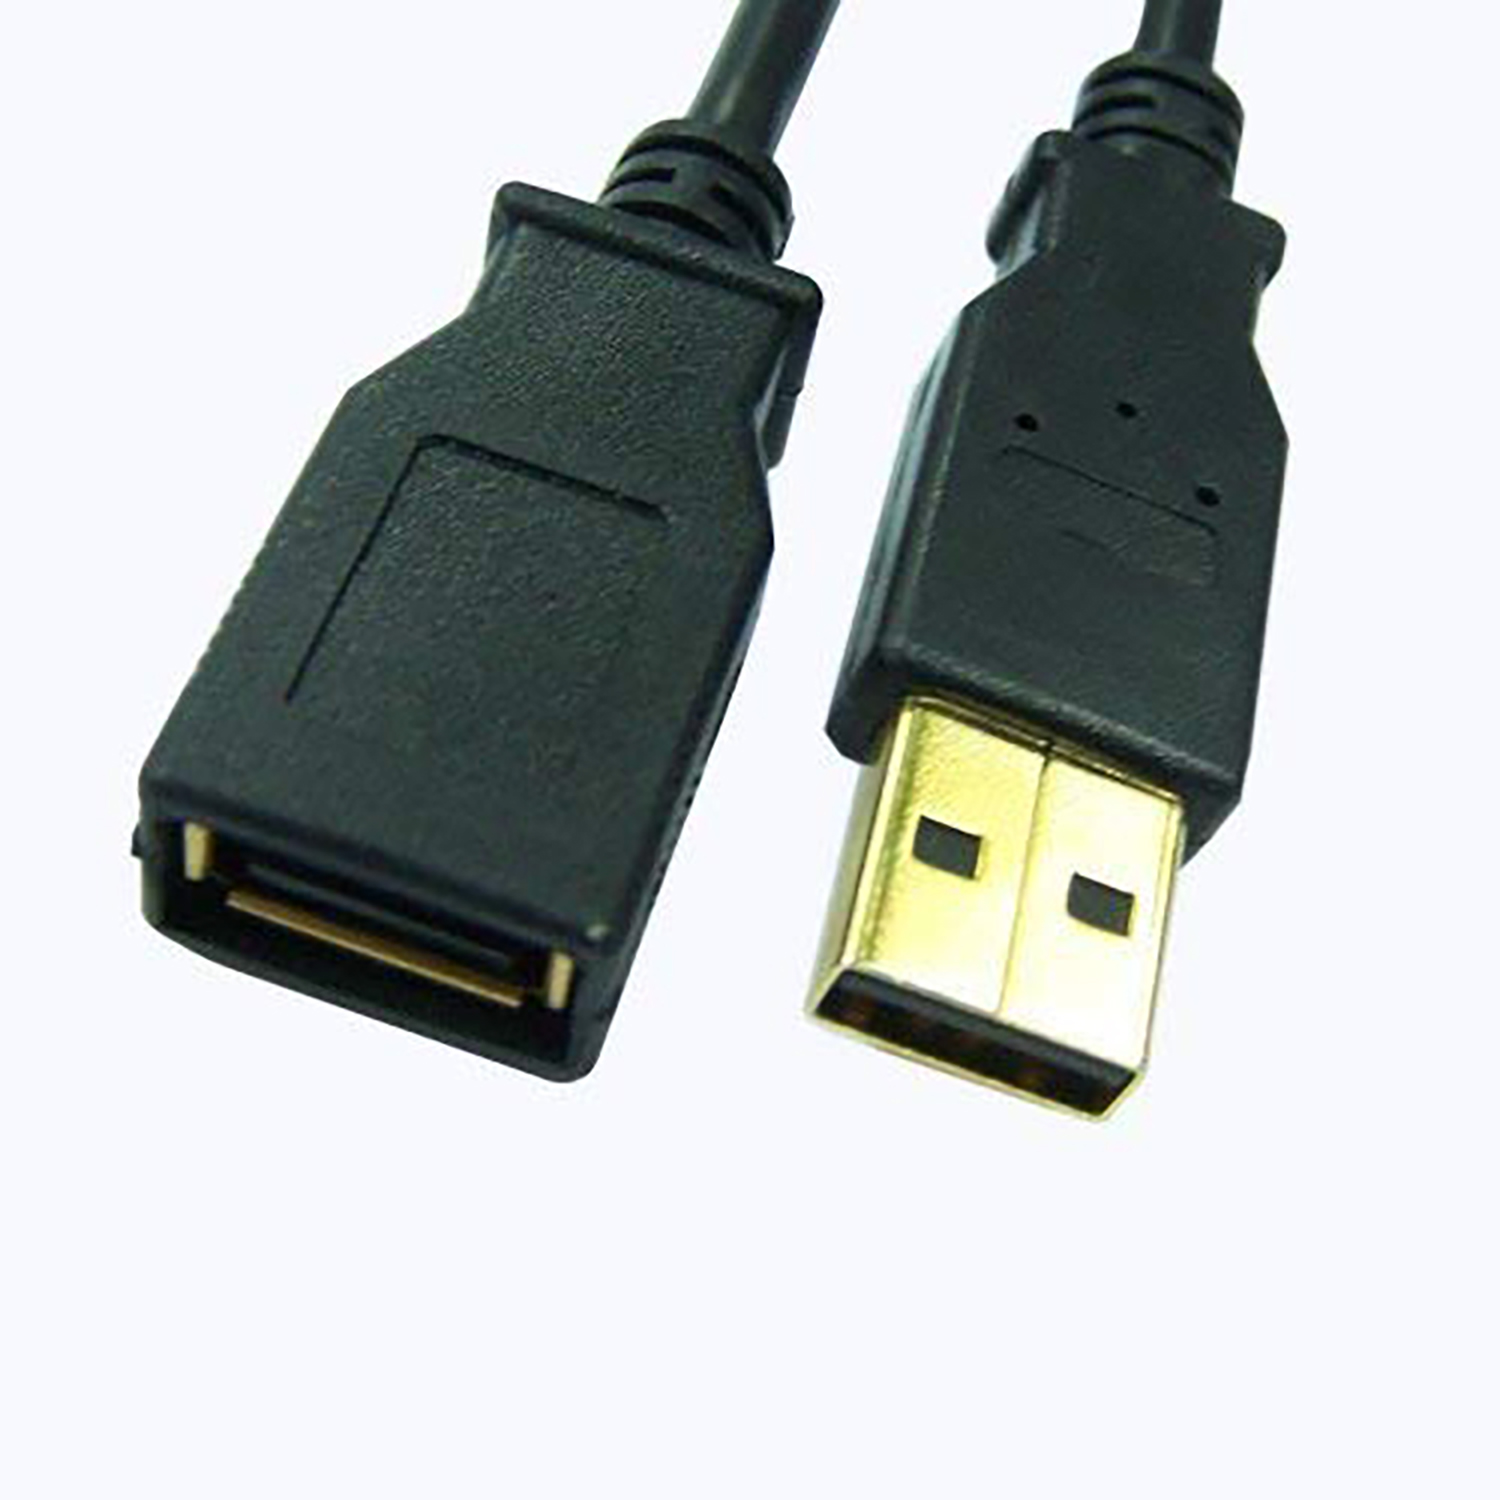 USB 2.0 A//A Extension Cable 24k Gold-plated 10ft Black